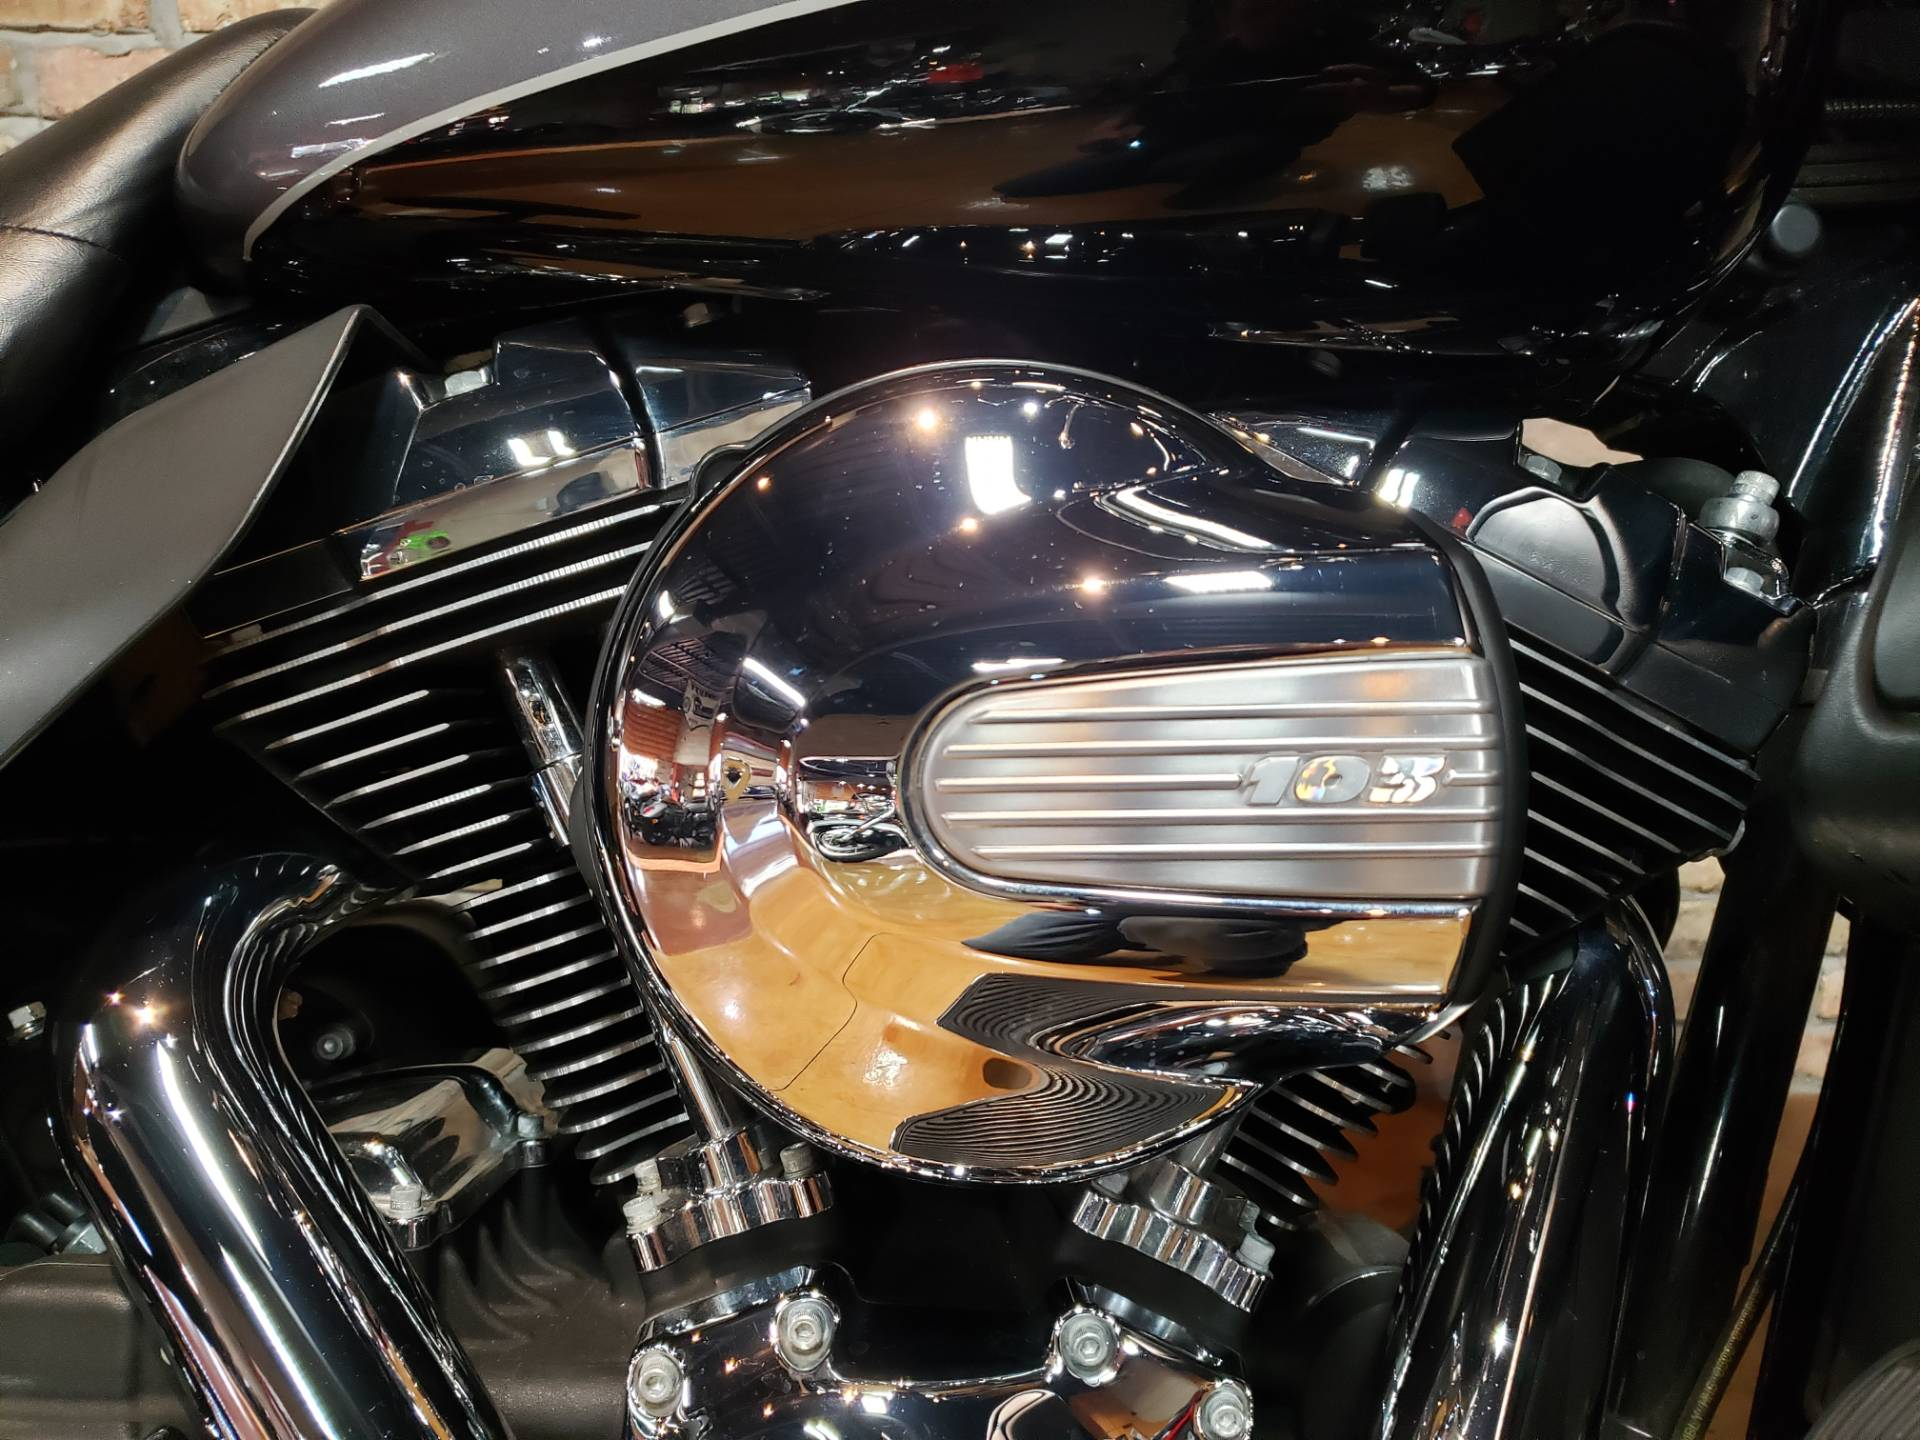 2014 Harley-Davidson Ultra Limited in Big Bend, Wisconsin - Photo 13